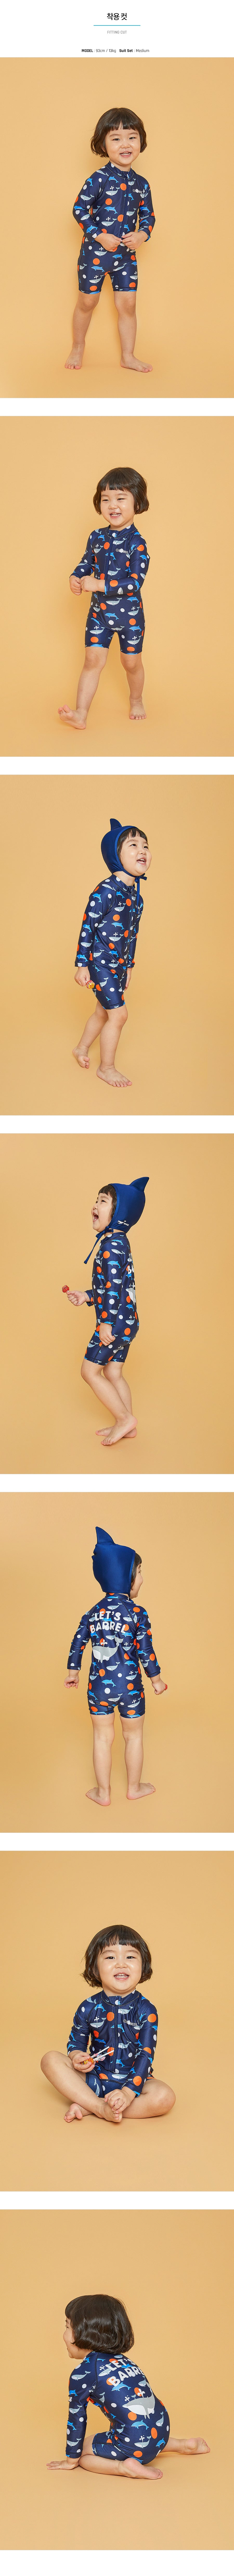 Barrel Toddler Rash Suit Set-HELLO FLOWER